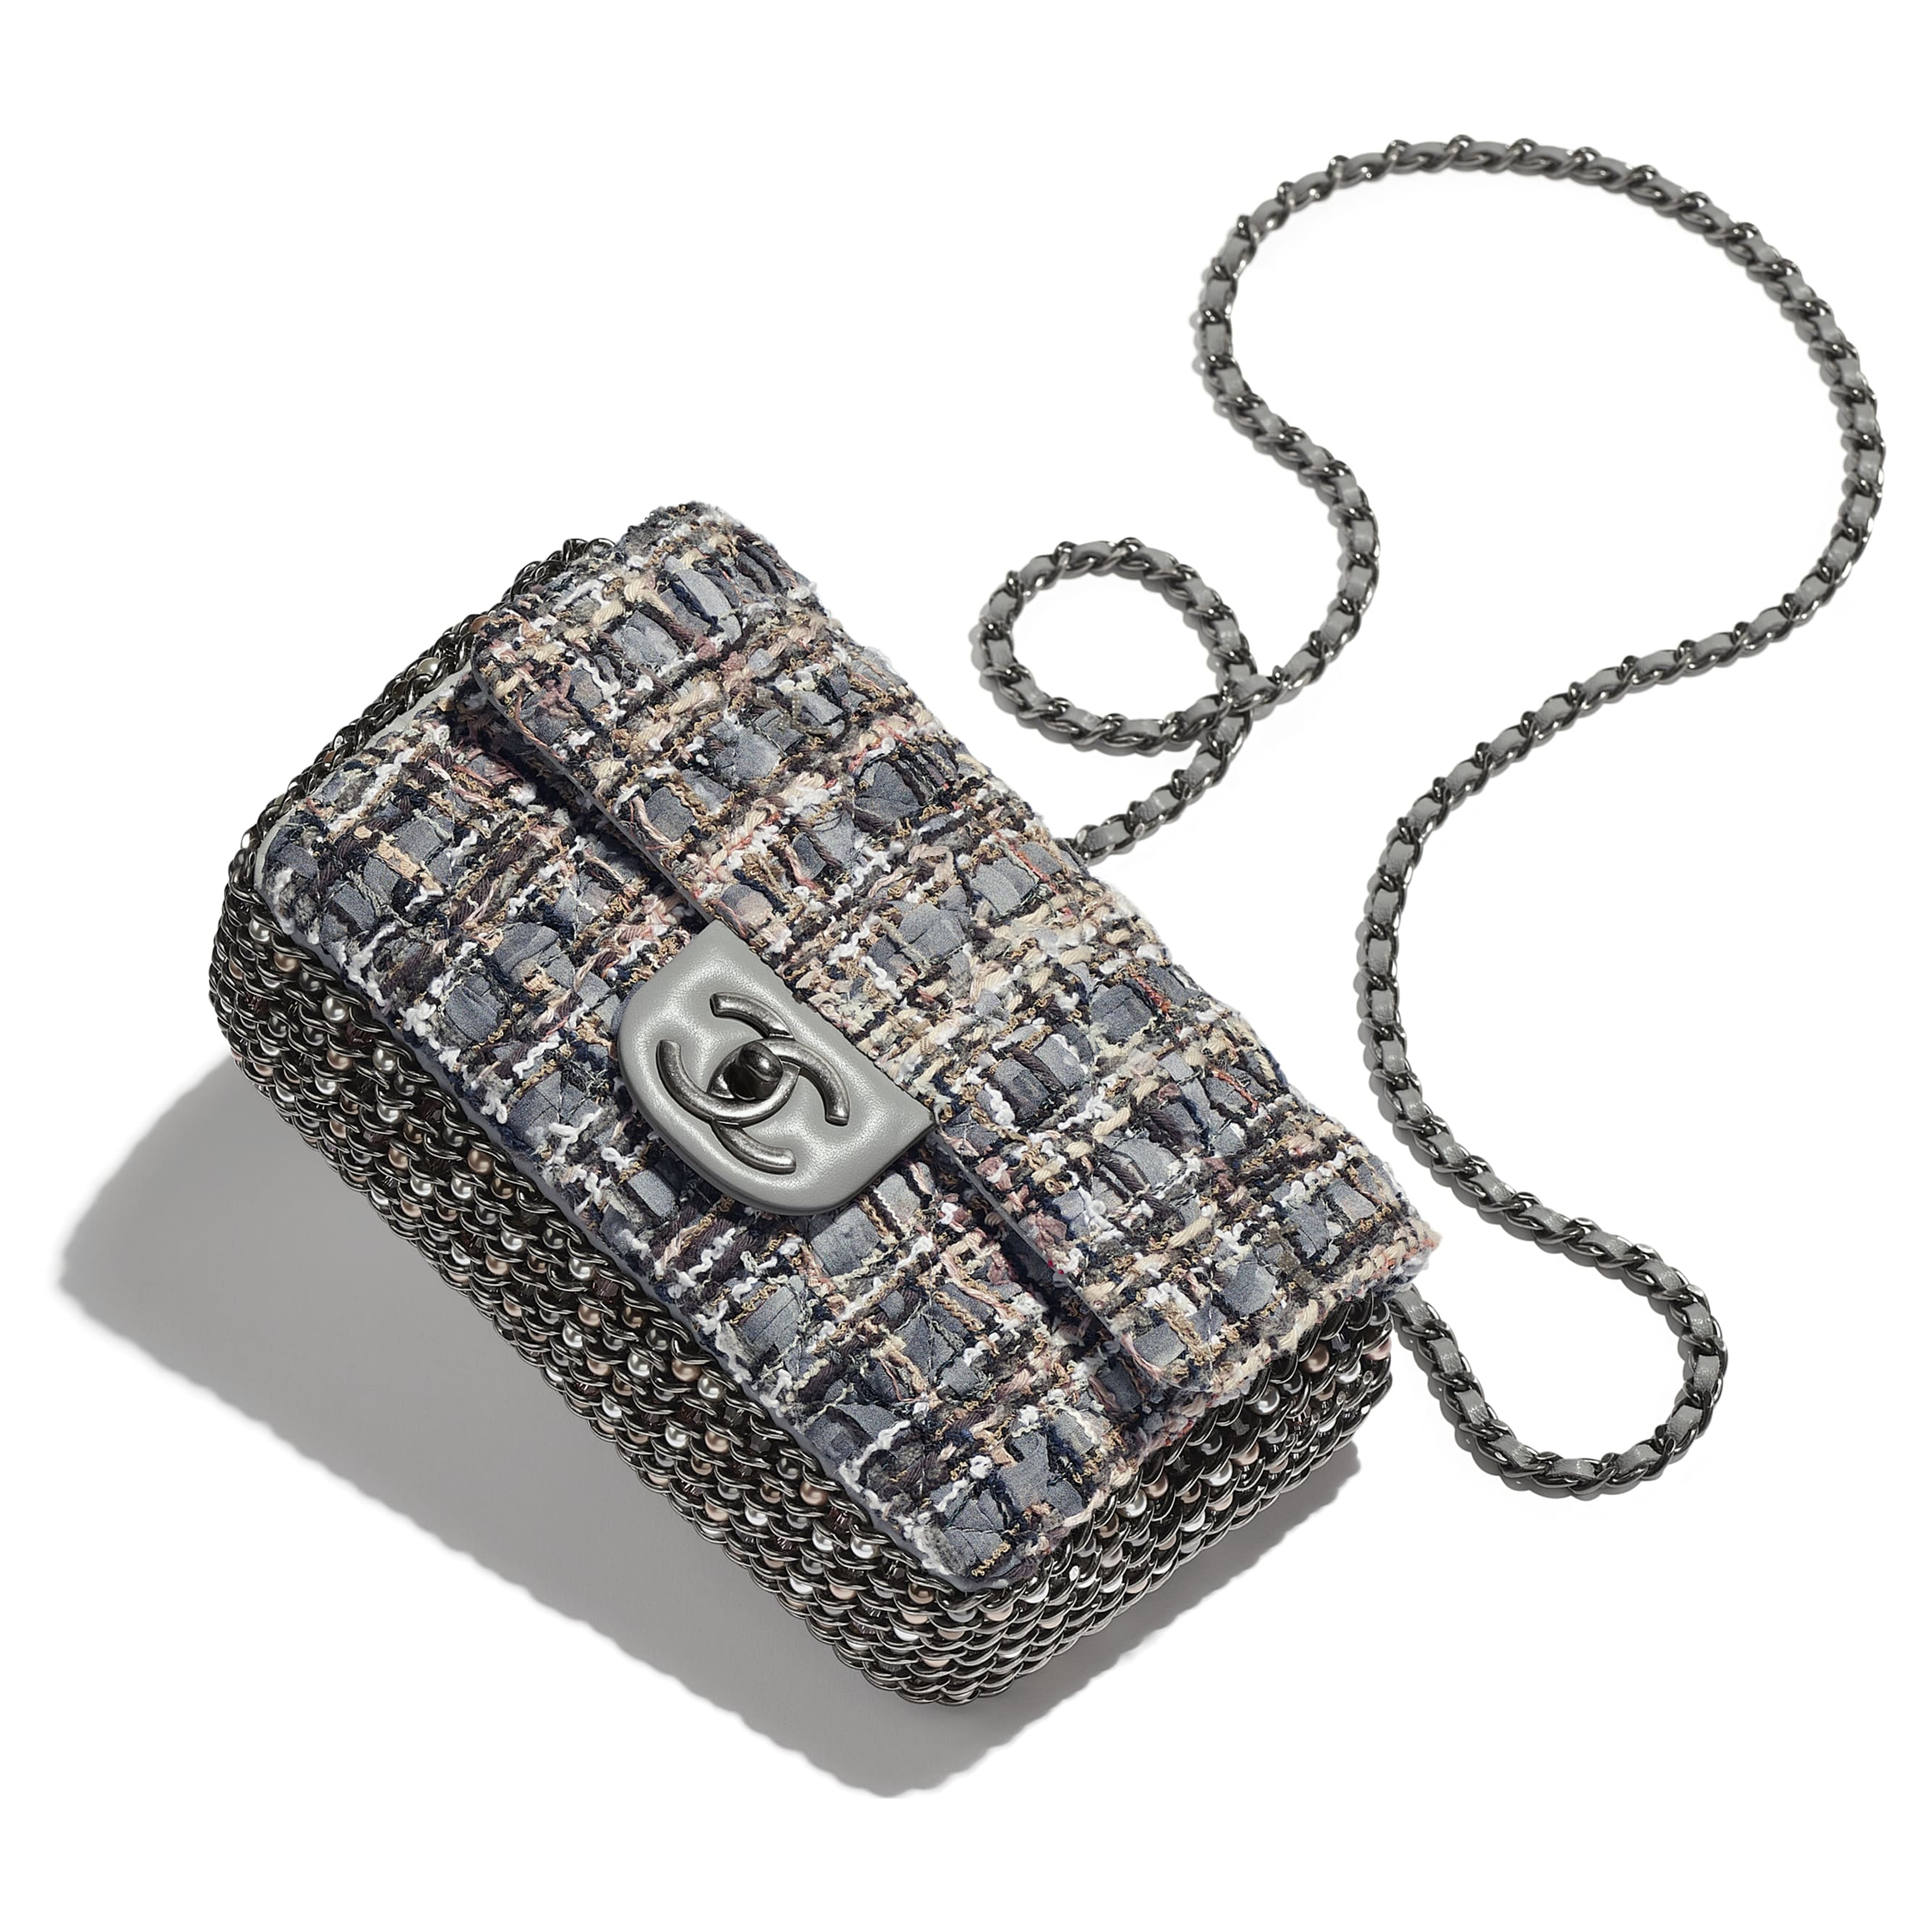 Flap Bag - Grey, Beige, Brown & White - Tweed, Imitation Pearls & Ruthenium-Finish Metal - Extra view - see standard sized version